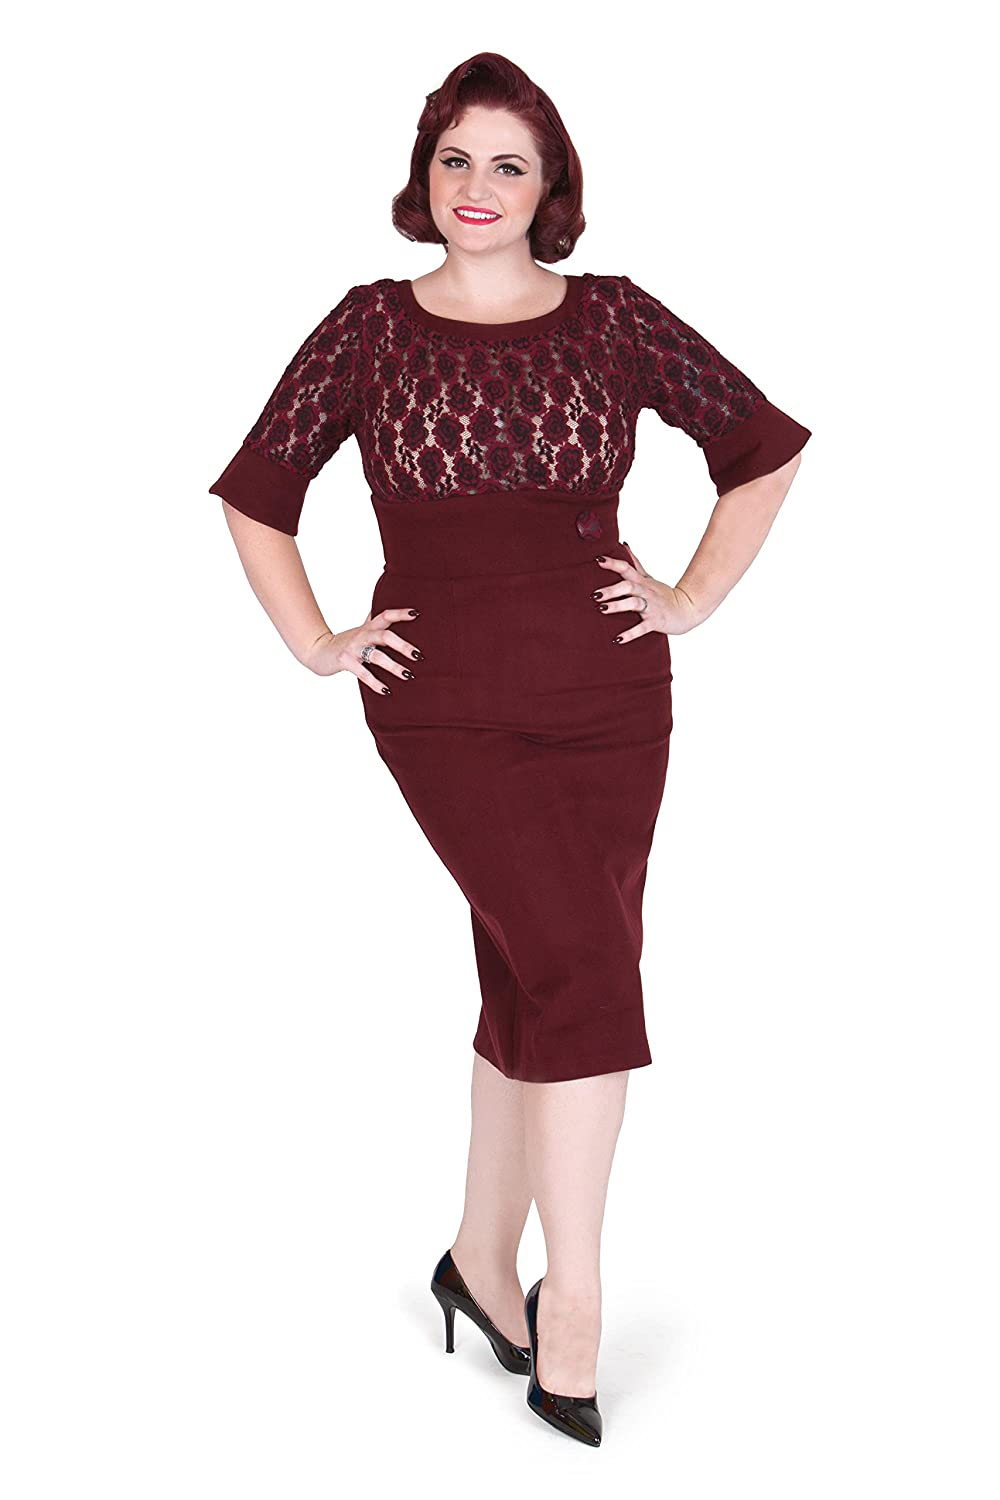 Merlot Retro Inspired Pencil Dress By Tatyana $120.00 AT vintagedancer.com